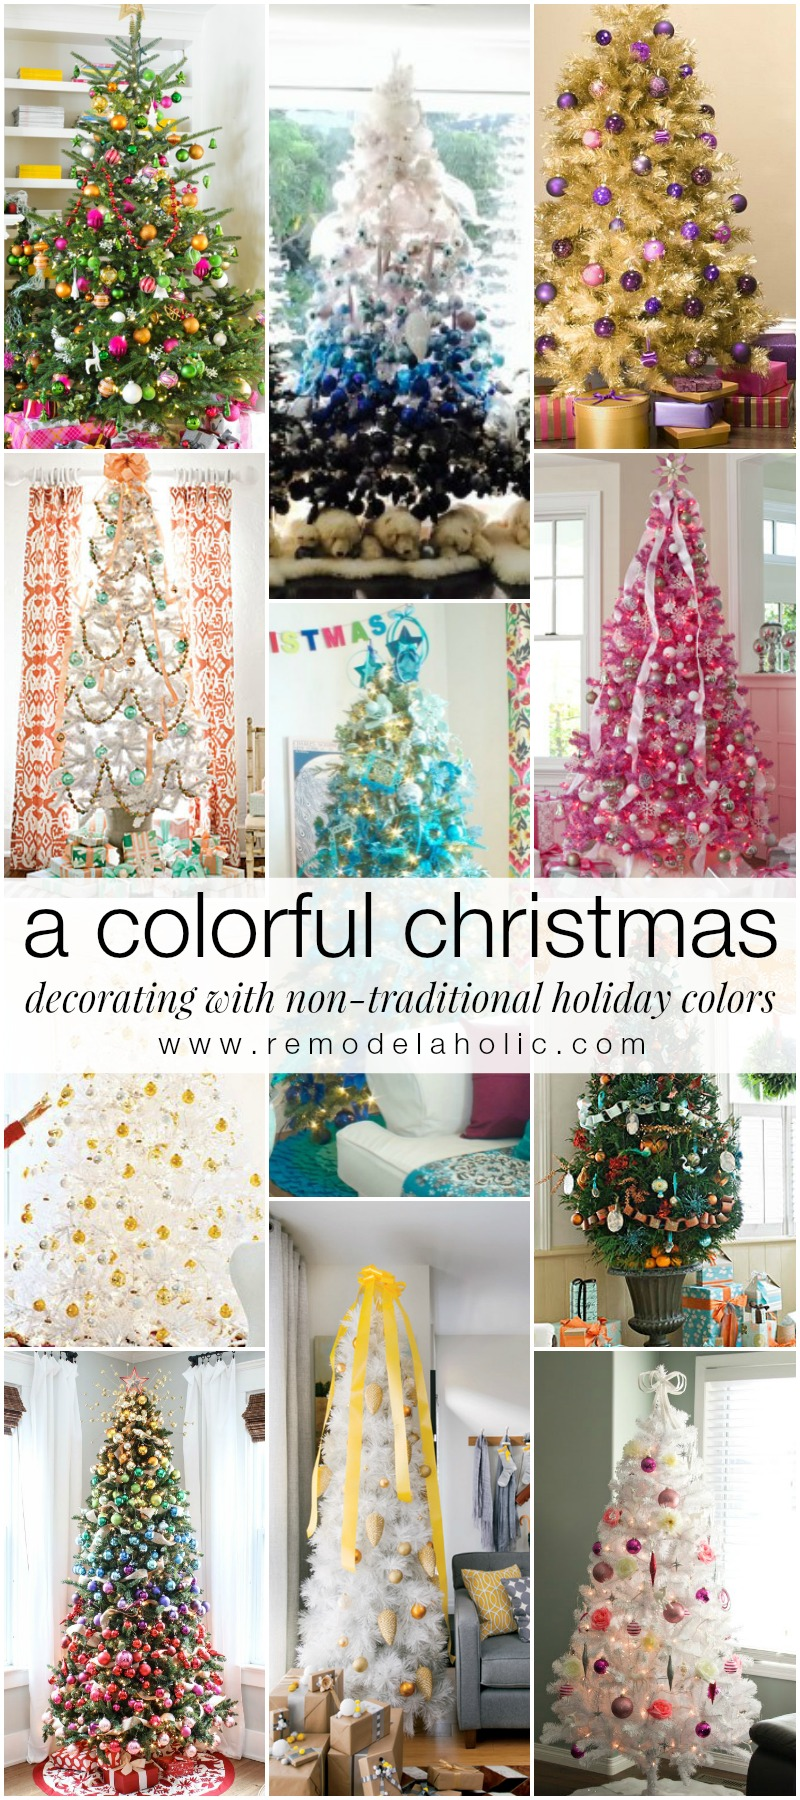 Remodelaholic Decorating with NonTraditional Christmas Colors